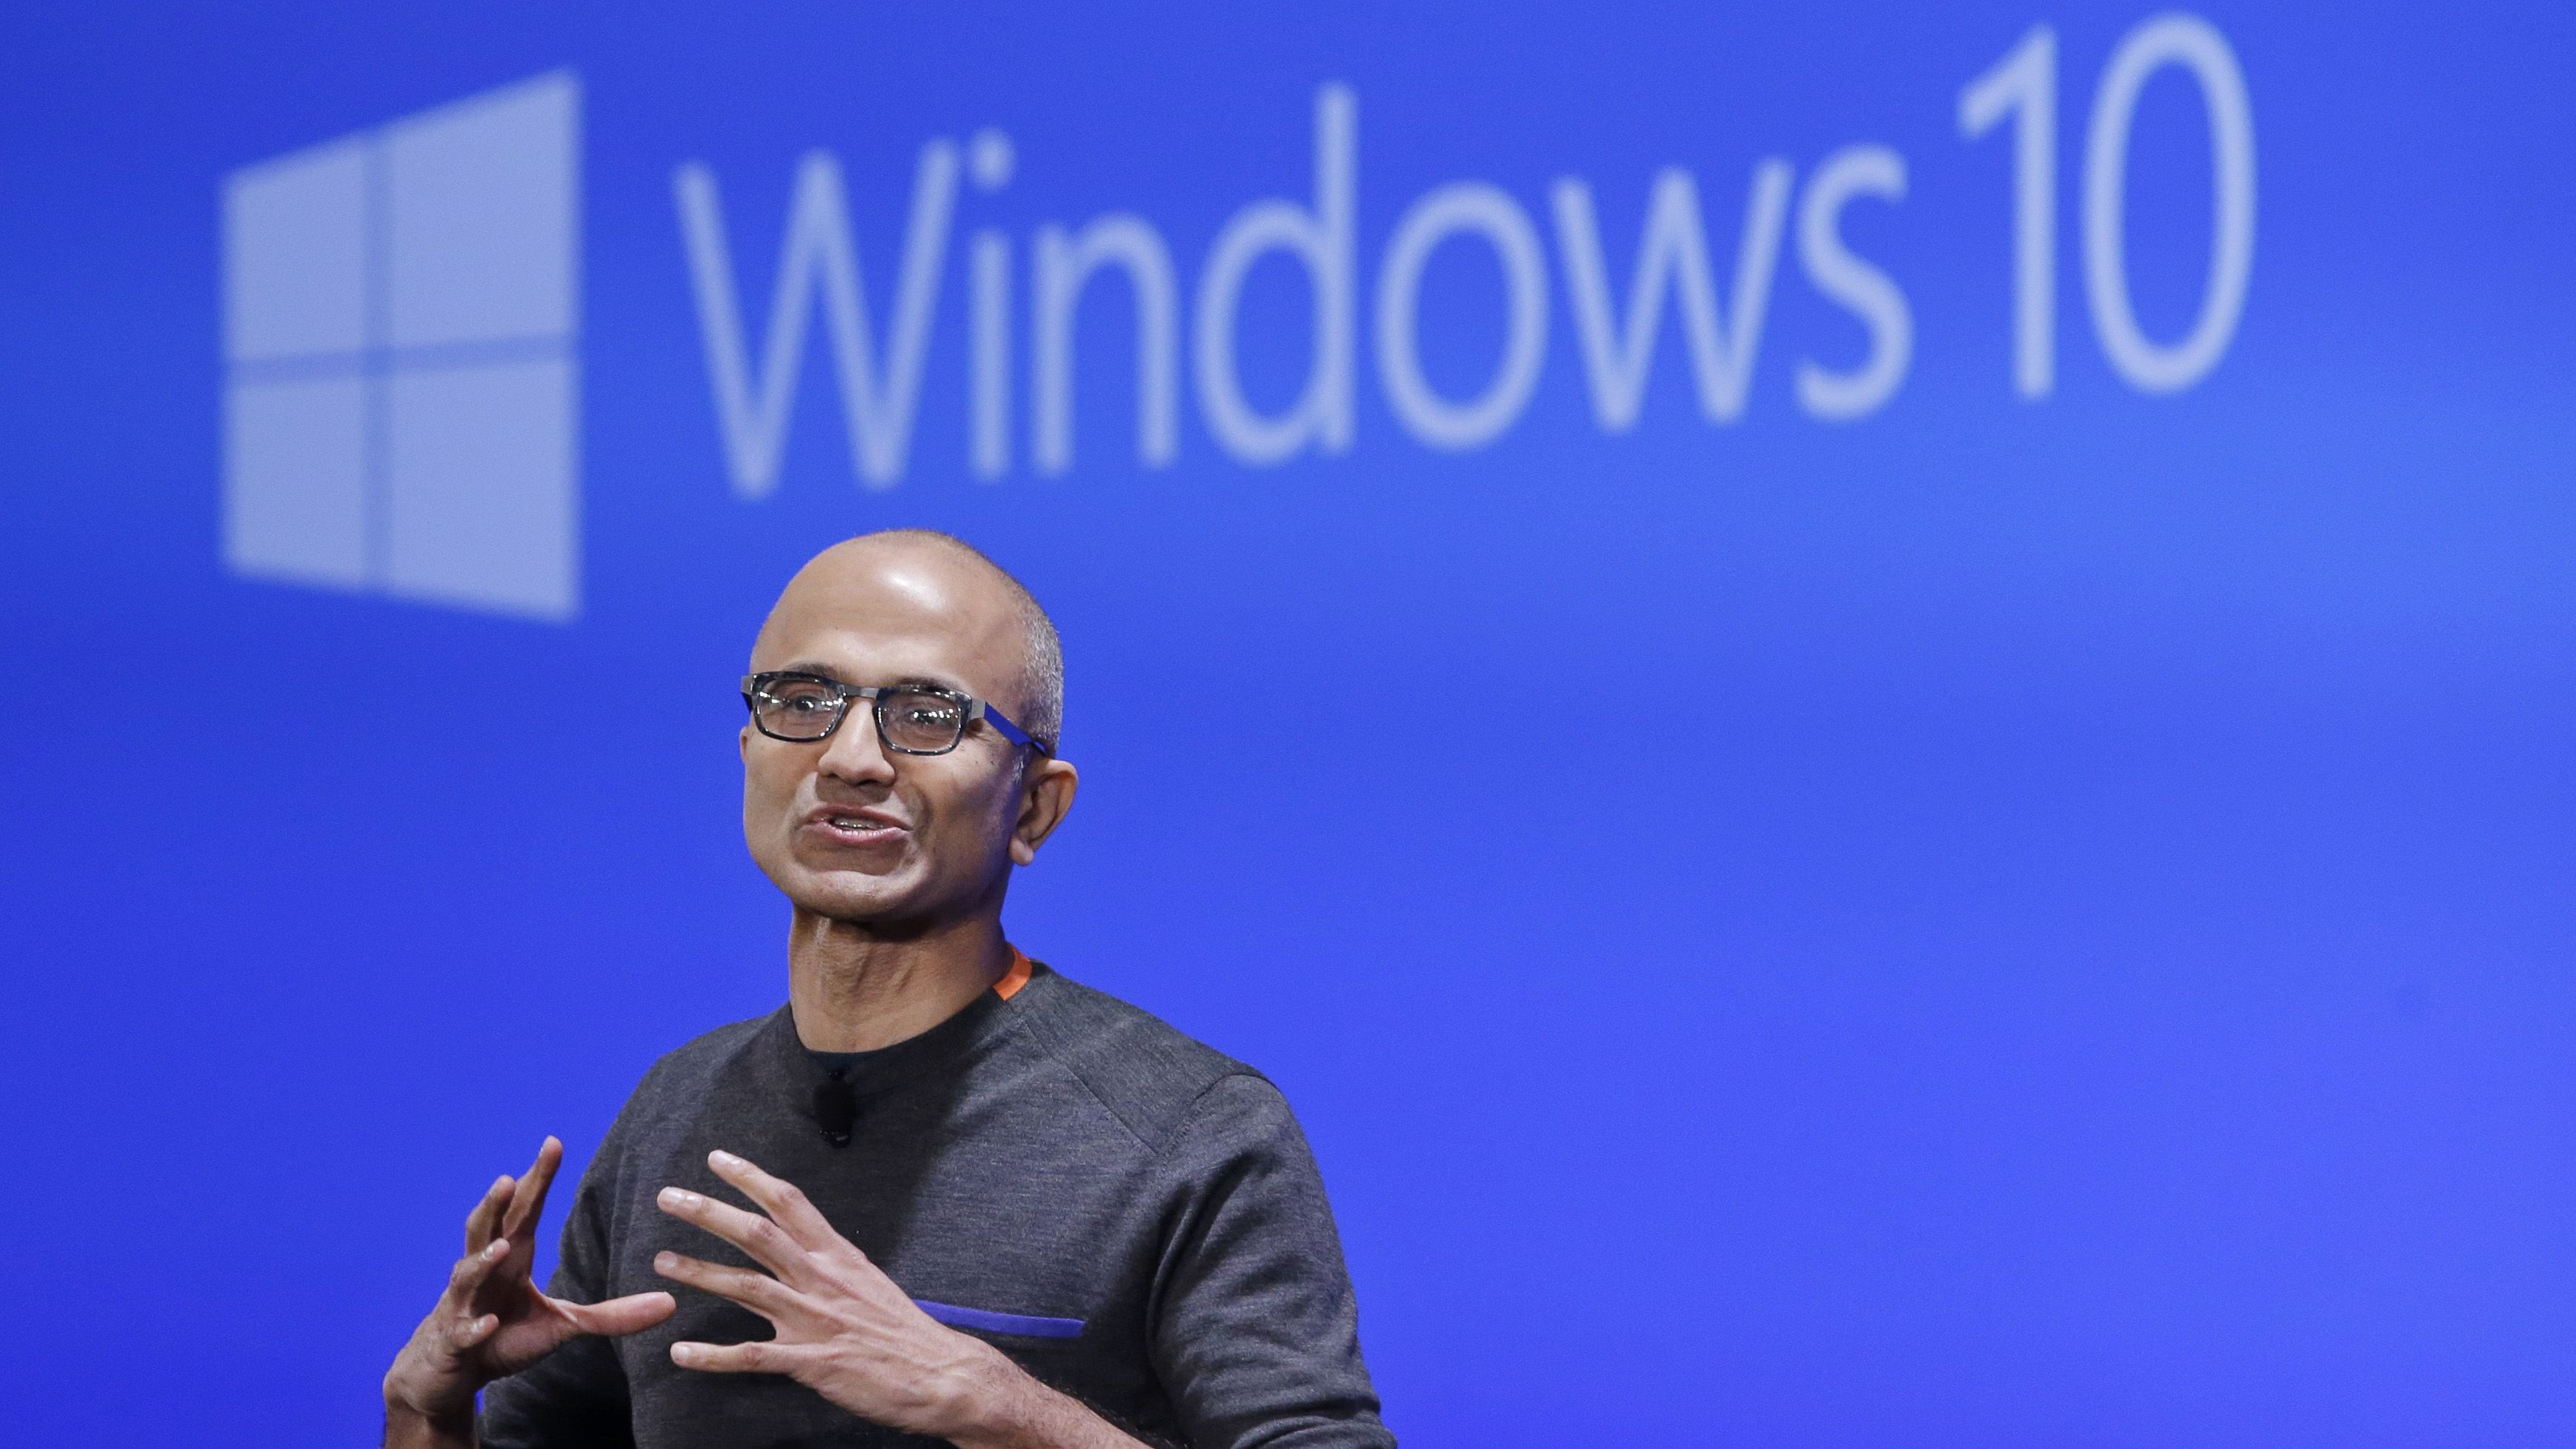 FILE - In this Jan. 21, 2015 file photo, Microsoft CEO Satya Nadella speaks at an event demonstrating the new features of Windows 10 at the company's headquarters in Redmond, Wash. Microsoft reports quarterly financial results on Monday, Jan. 26, 2015. (AP Photo/Elaine Thompson, File)